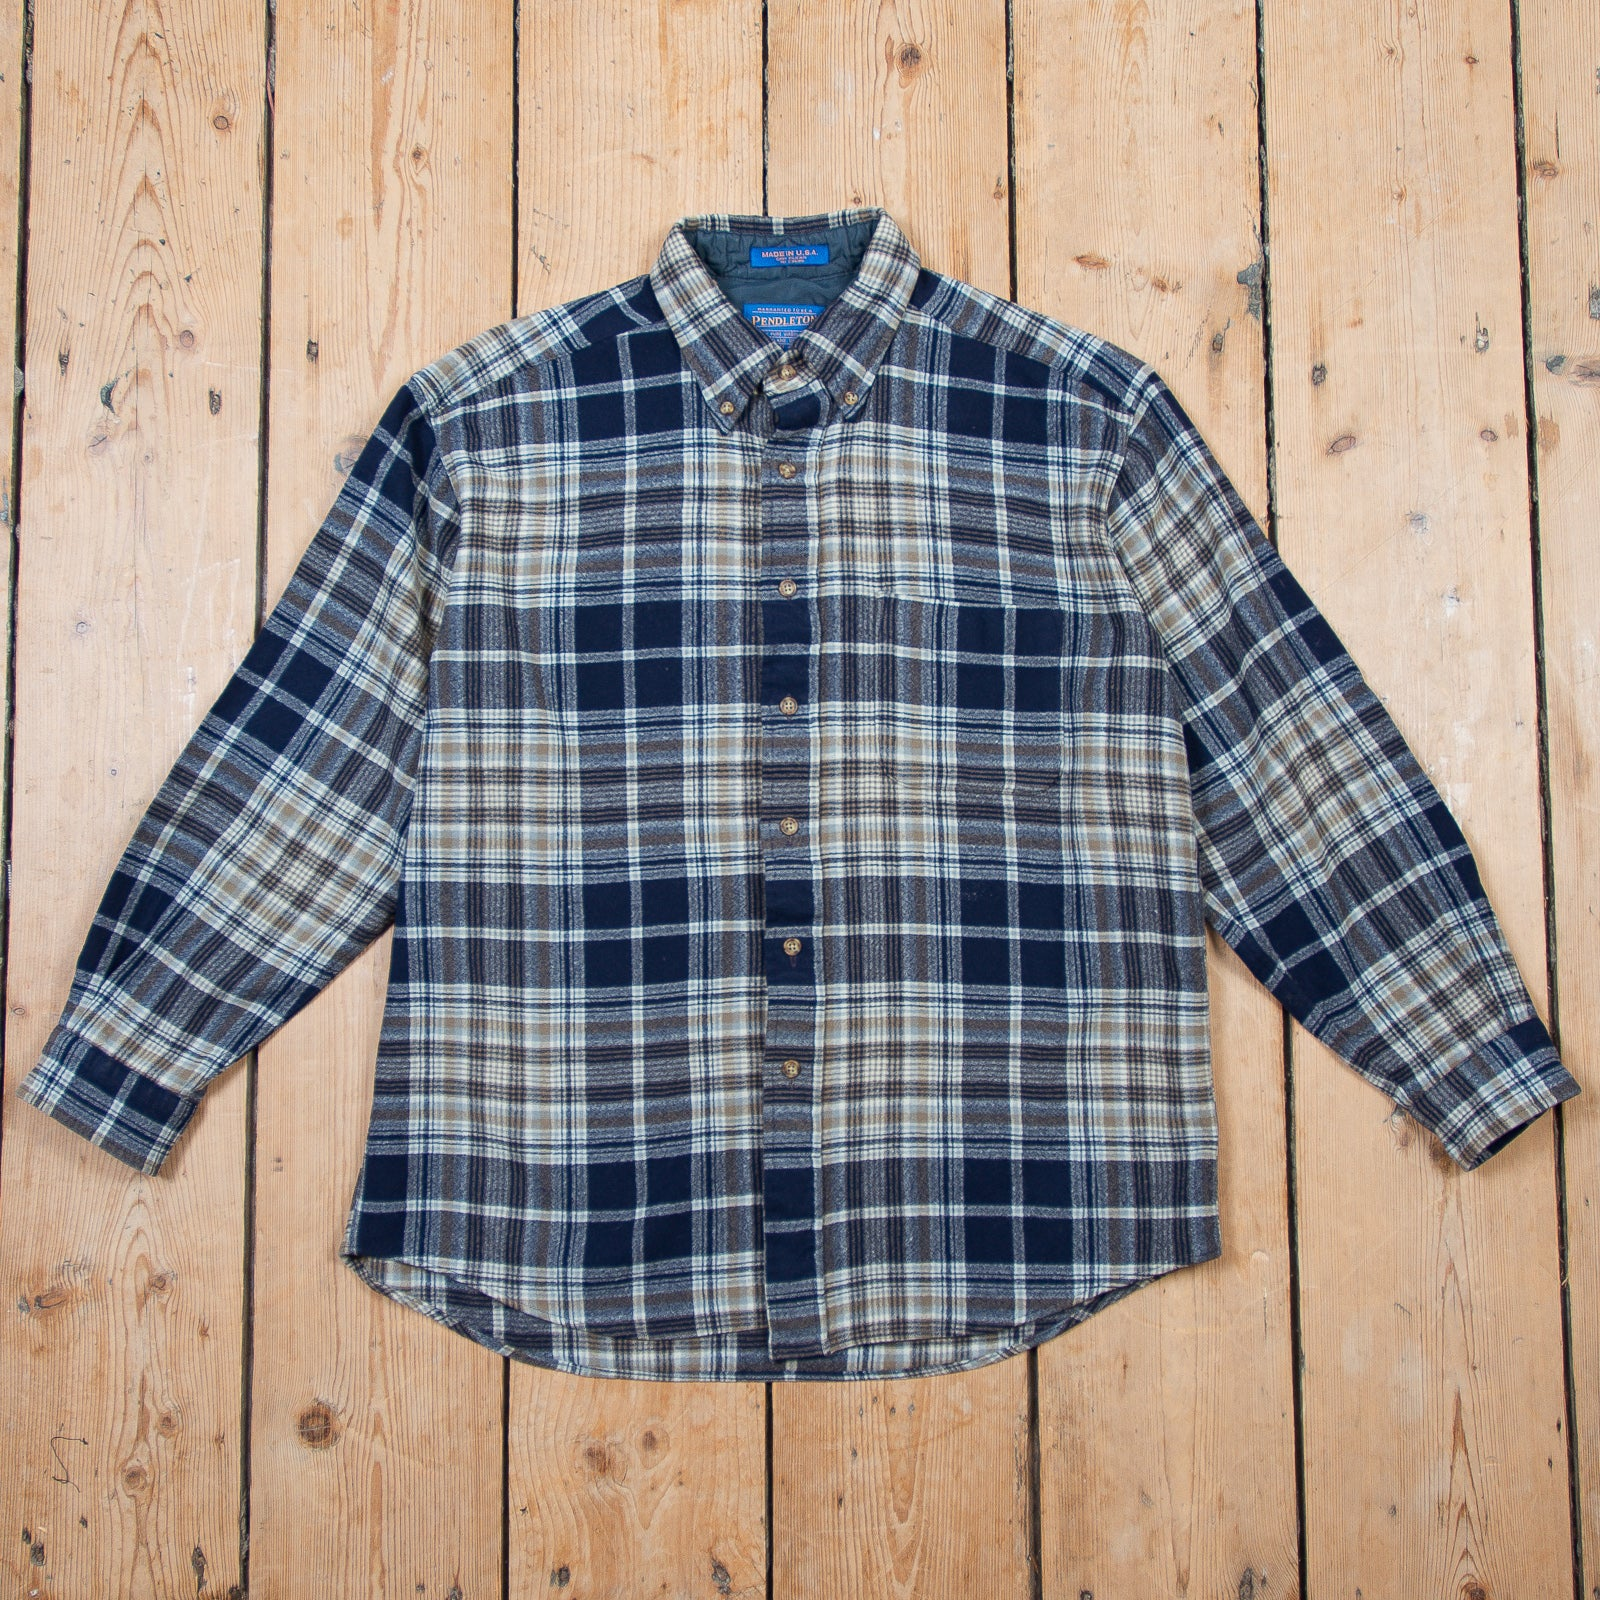 Pendleton Blue Checkered Shirt